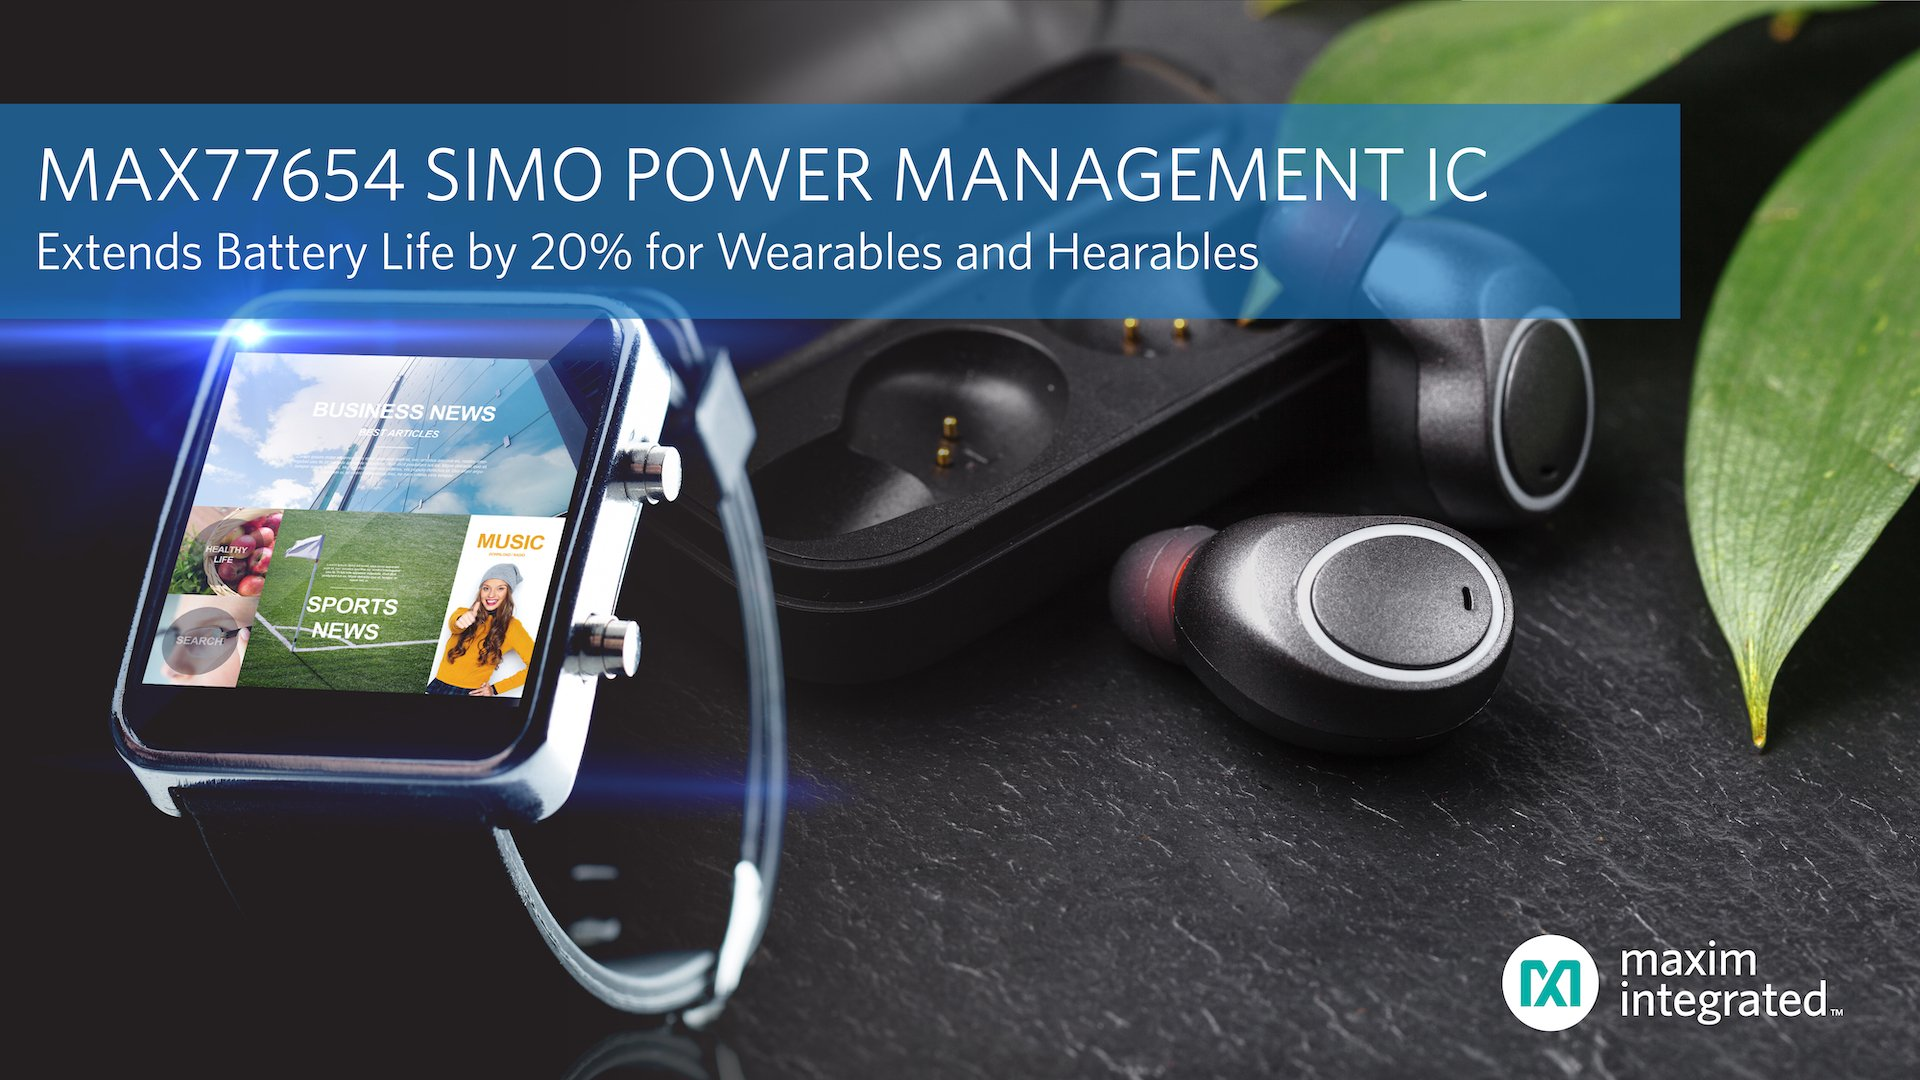 Next-Gen SIMO Power Management IC Cuts Solution Size by Half